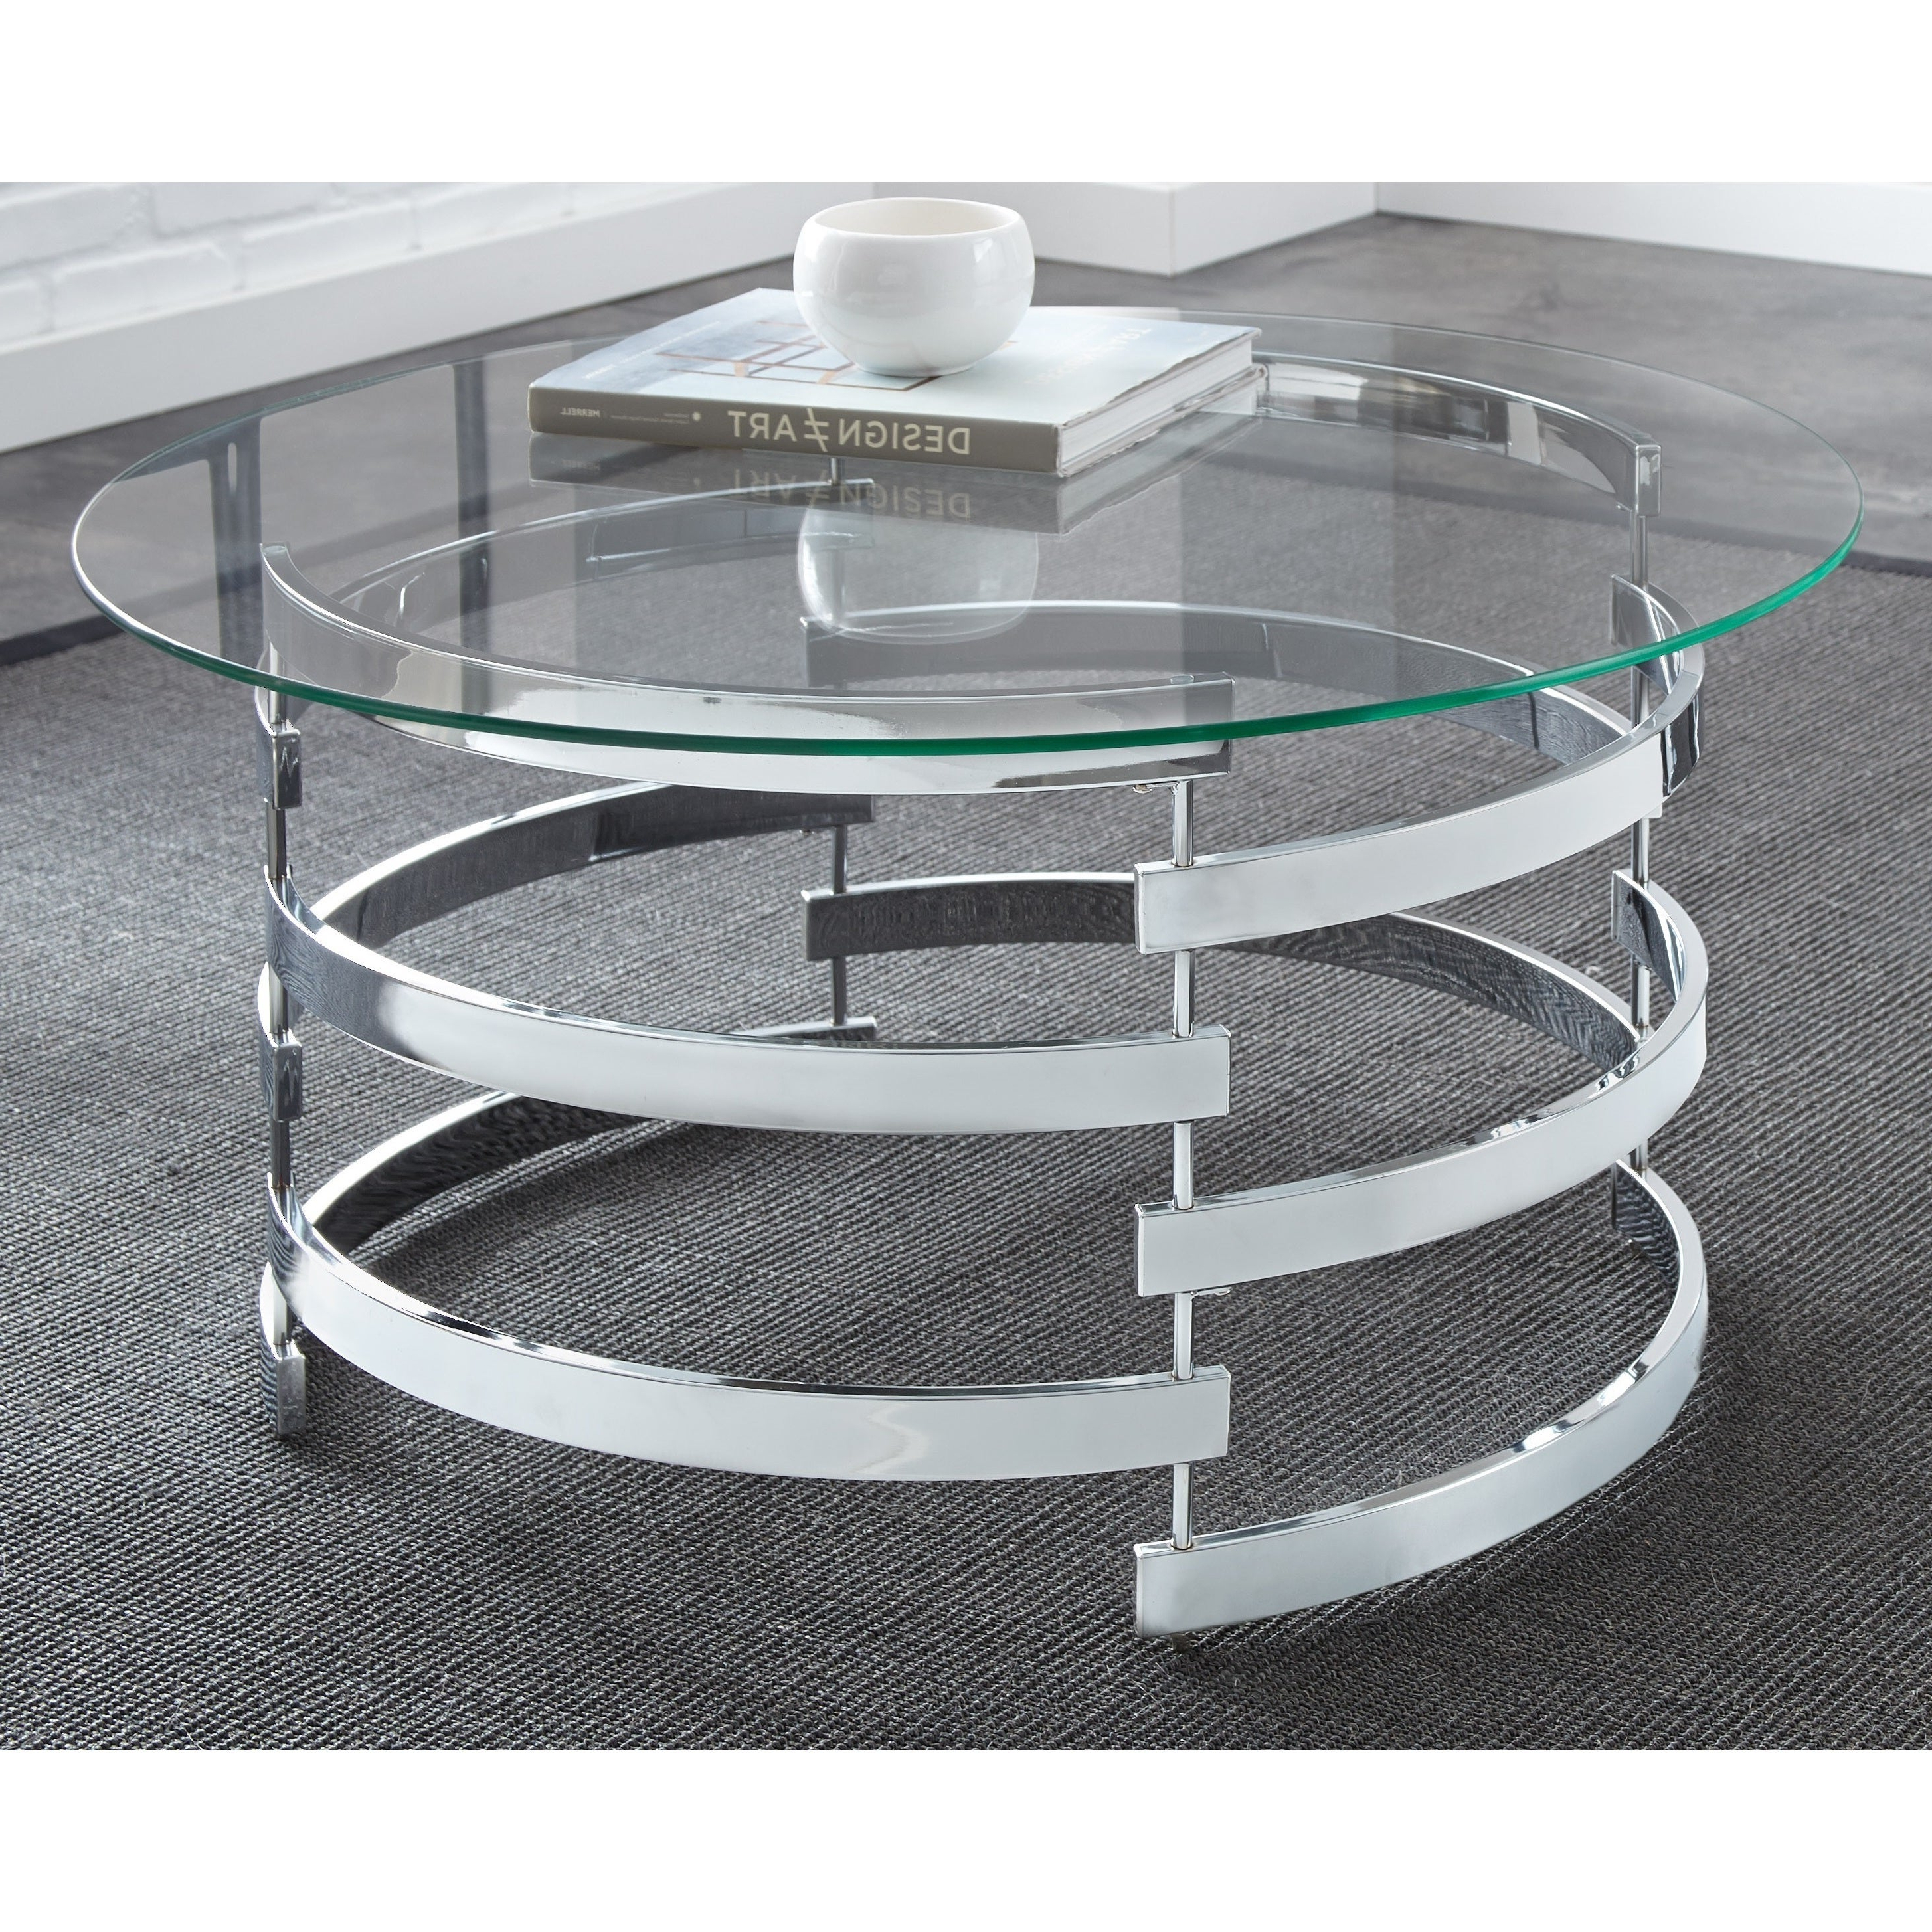 Famous Silver Orchid Ipsen Round Coffee Tables With X Base Throughout Details About Silver Orchid Bardeen Round Coffee Table Clear (View 11 of 20)